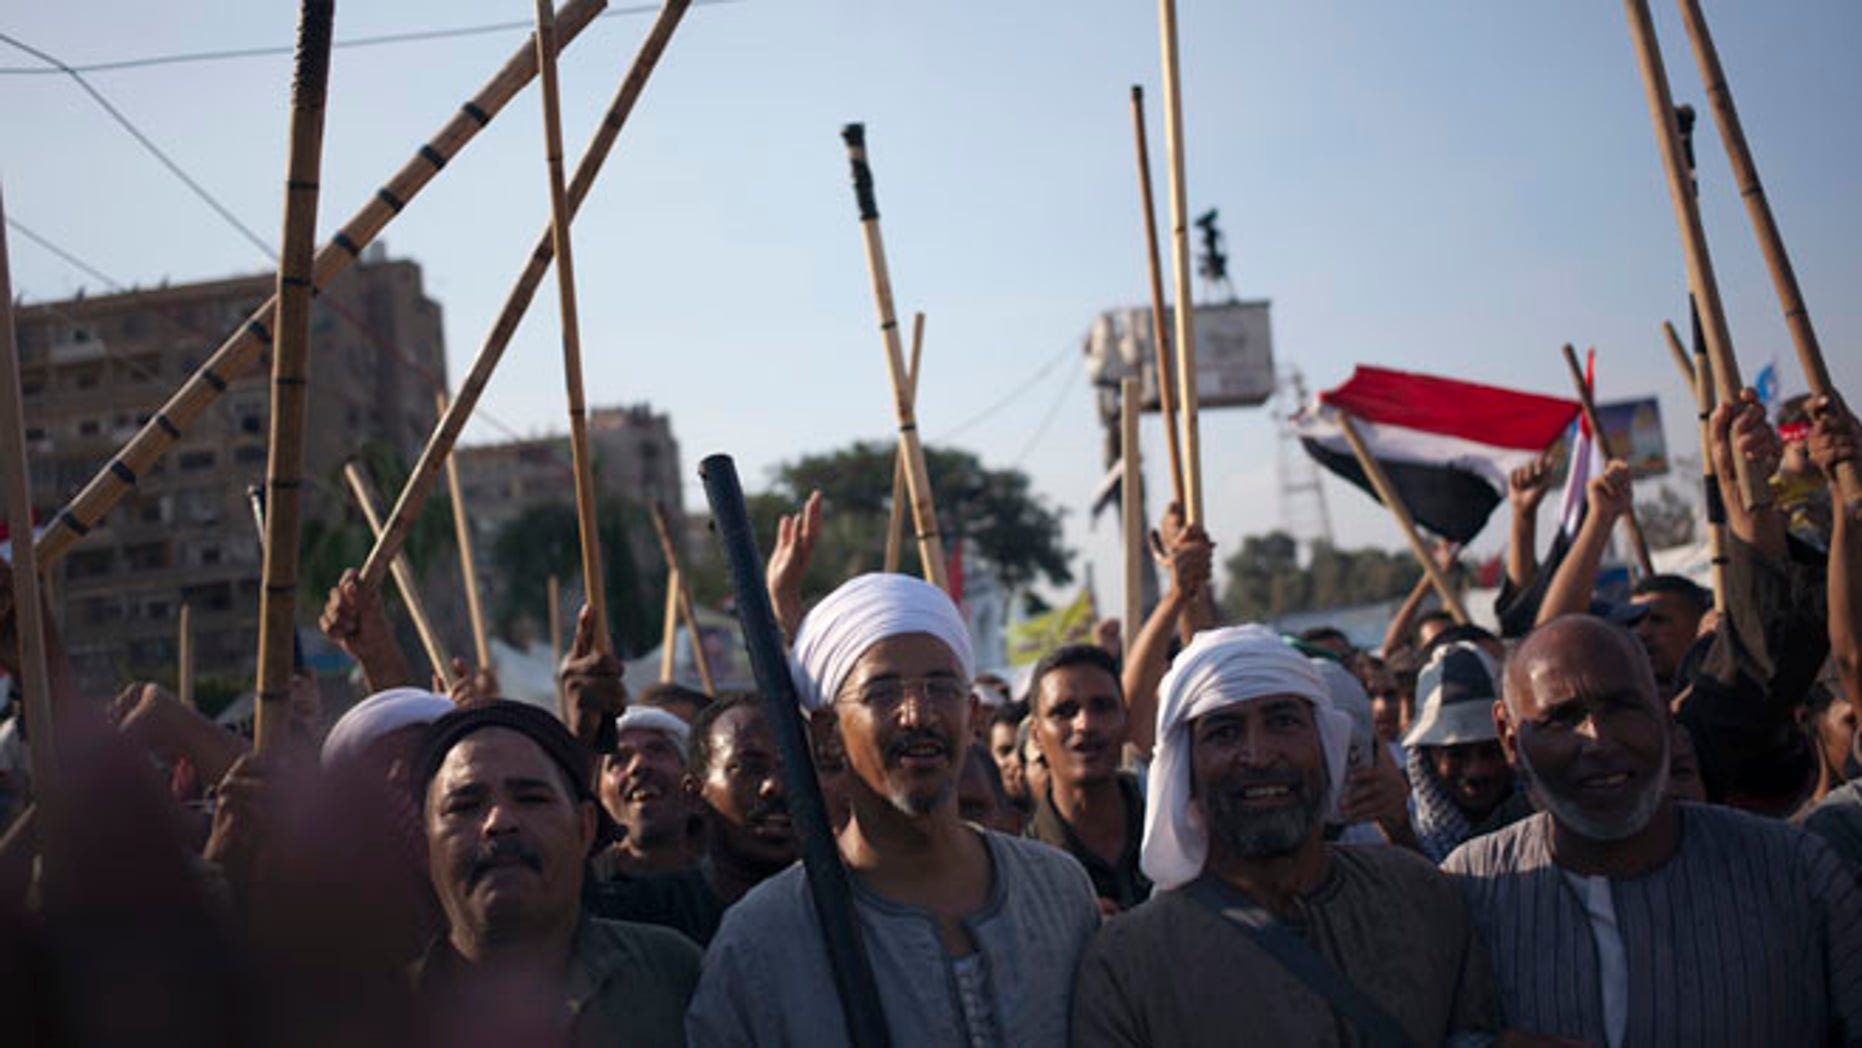 Aug. 10, 2013: Supporters of Egypt's ousted President Mohammed Morsi hold up wooden sticks as they participate in a protest outside Rabaah al-Adawiya mosque, where protesters have installed a camp and held daily rallies at Nasr City, in Cairo, Egypt.